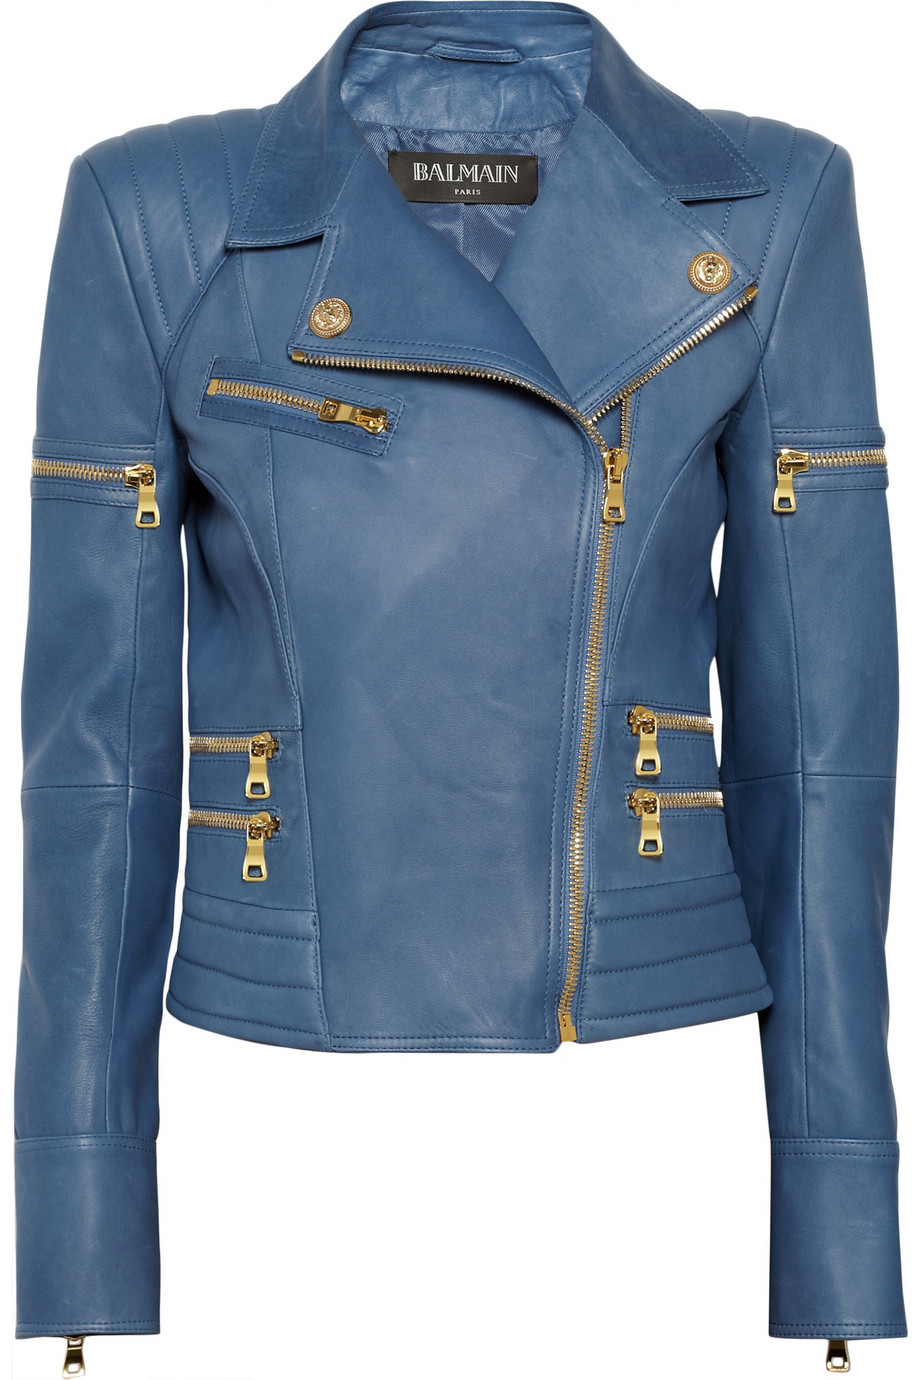 Balmain Paris Leather Jacket | Balmain Mens Clothing | Balmain Leather Jacket